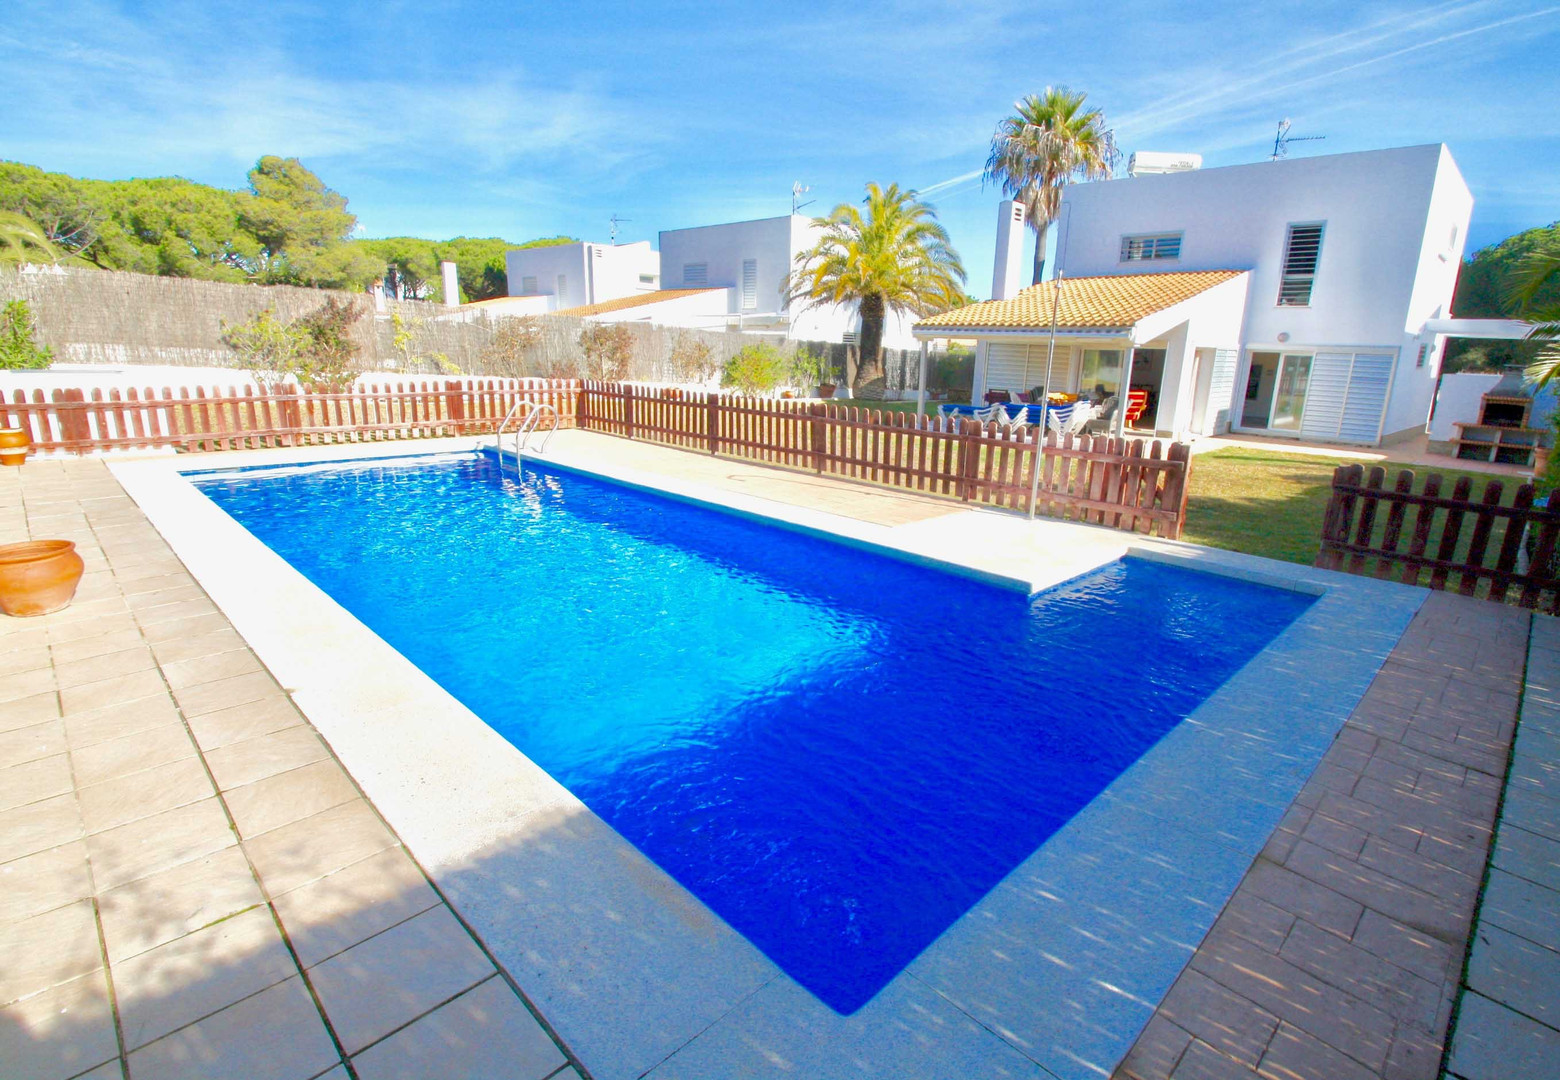 Modern property with fenced pool